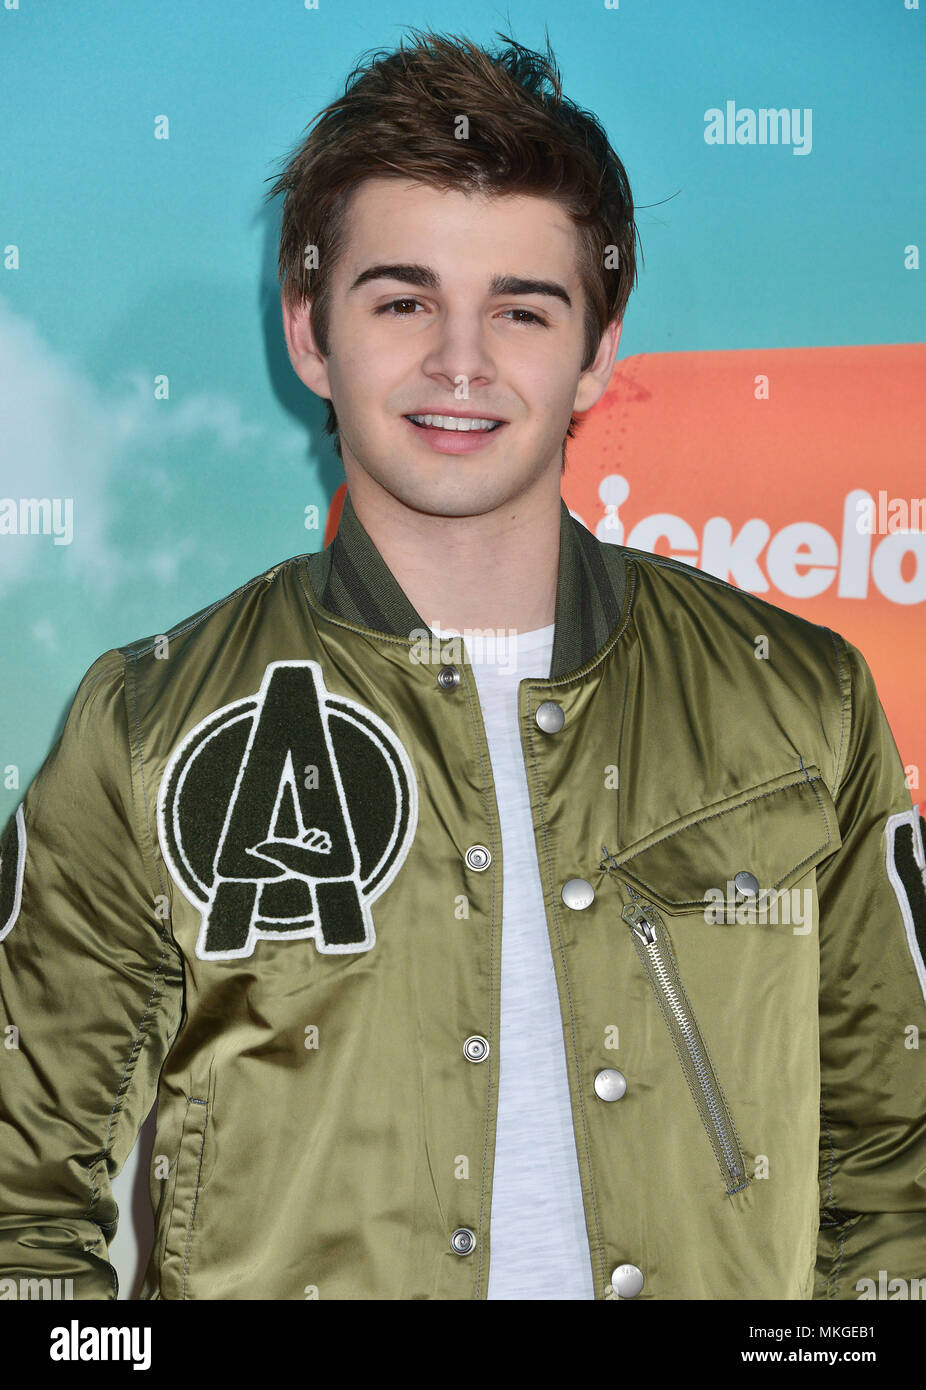 Actor and musician Jack Griffo: movies and details of his personal life 76